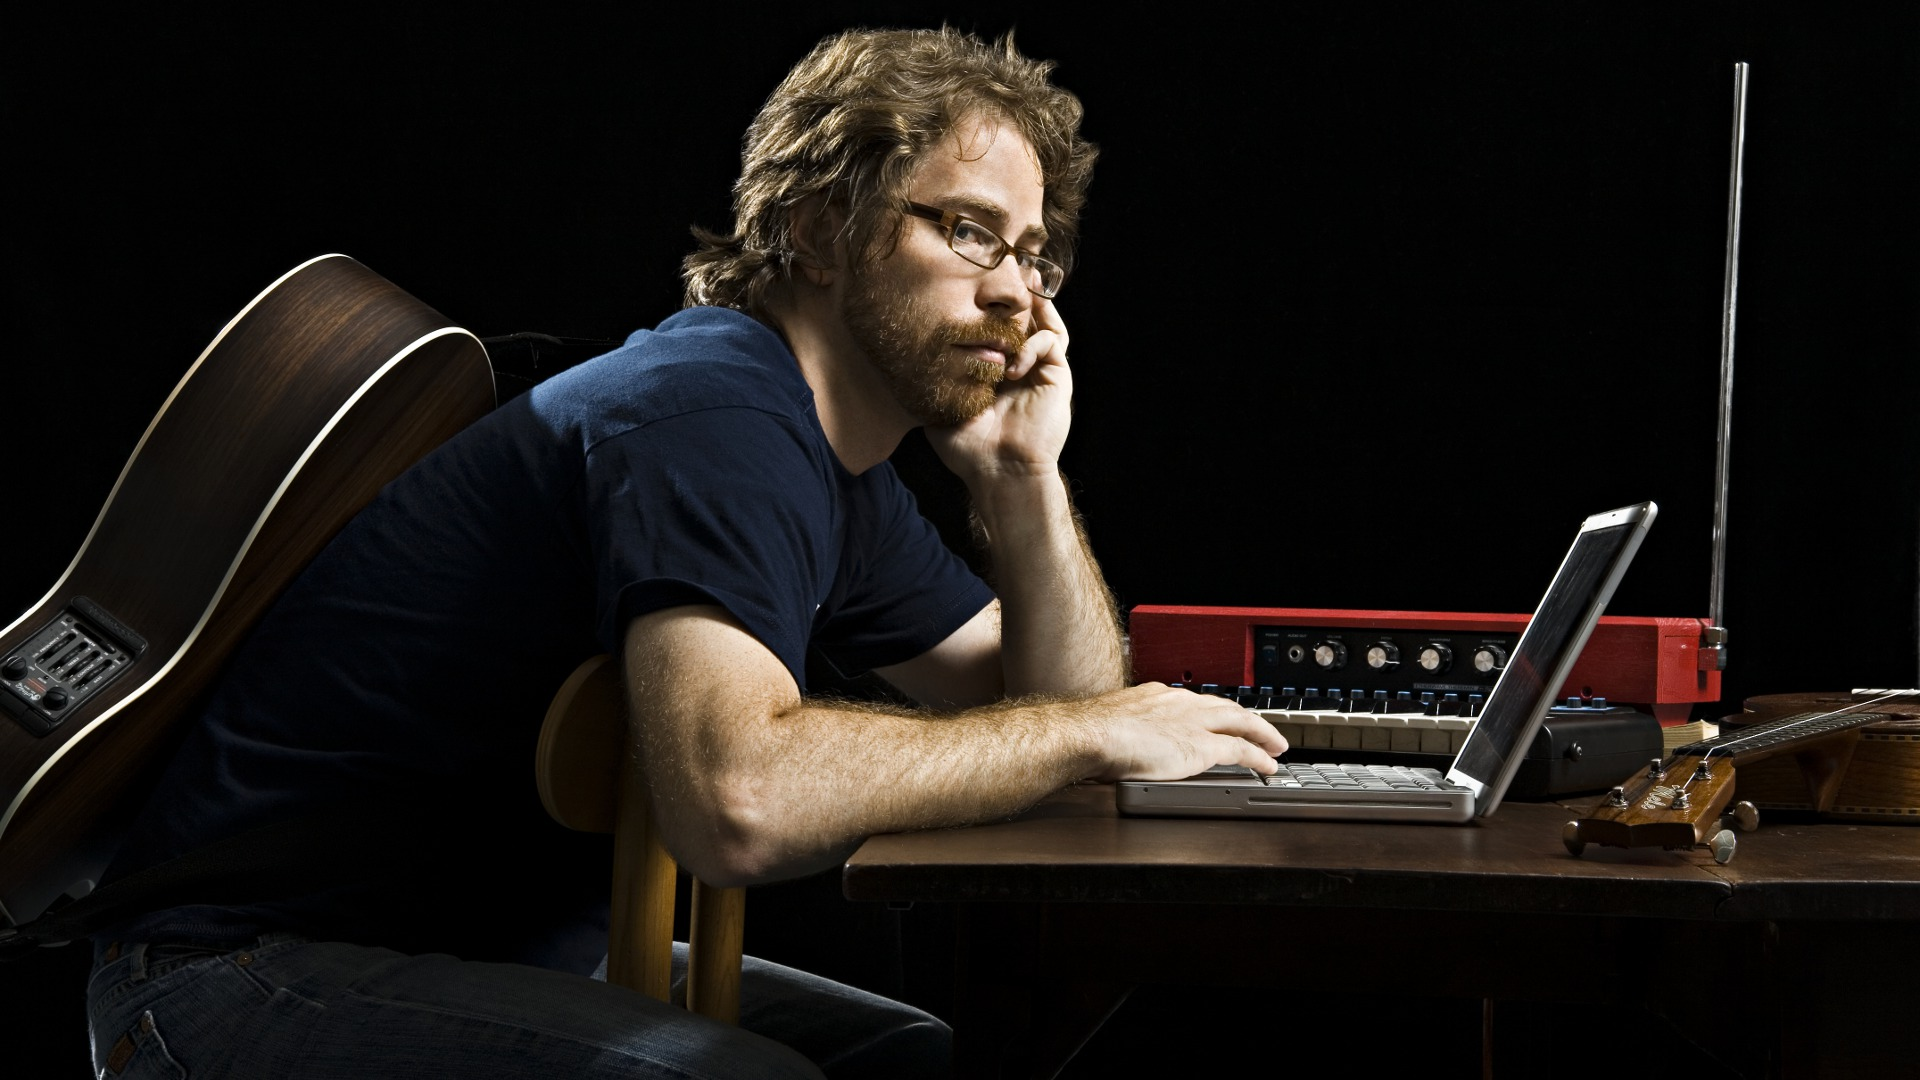 Jonathan Coulton Phone number, Email Id, Fanmail, Instagram, Tiktok, and Contact Details